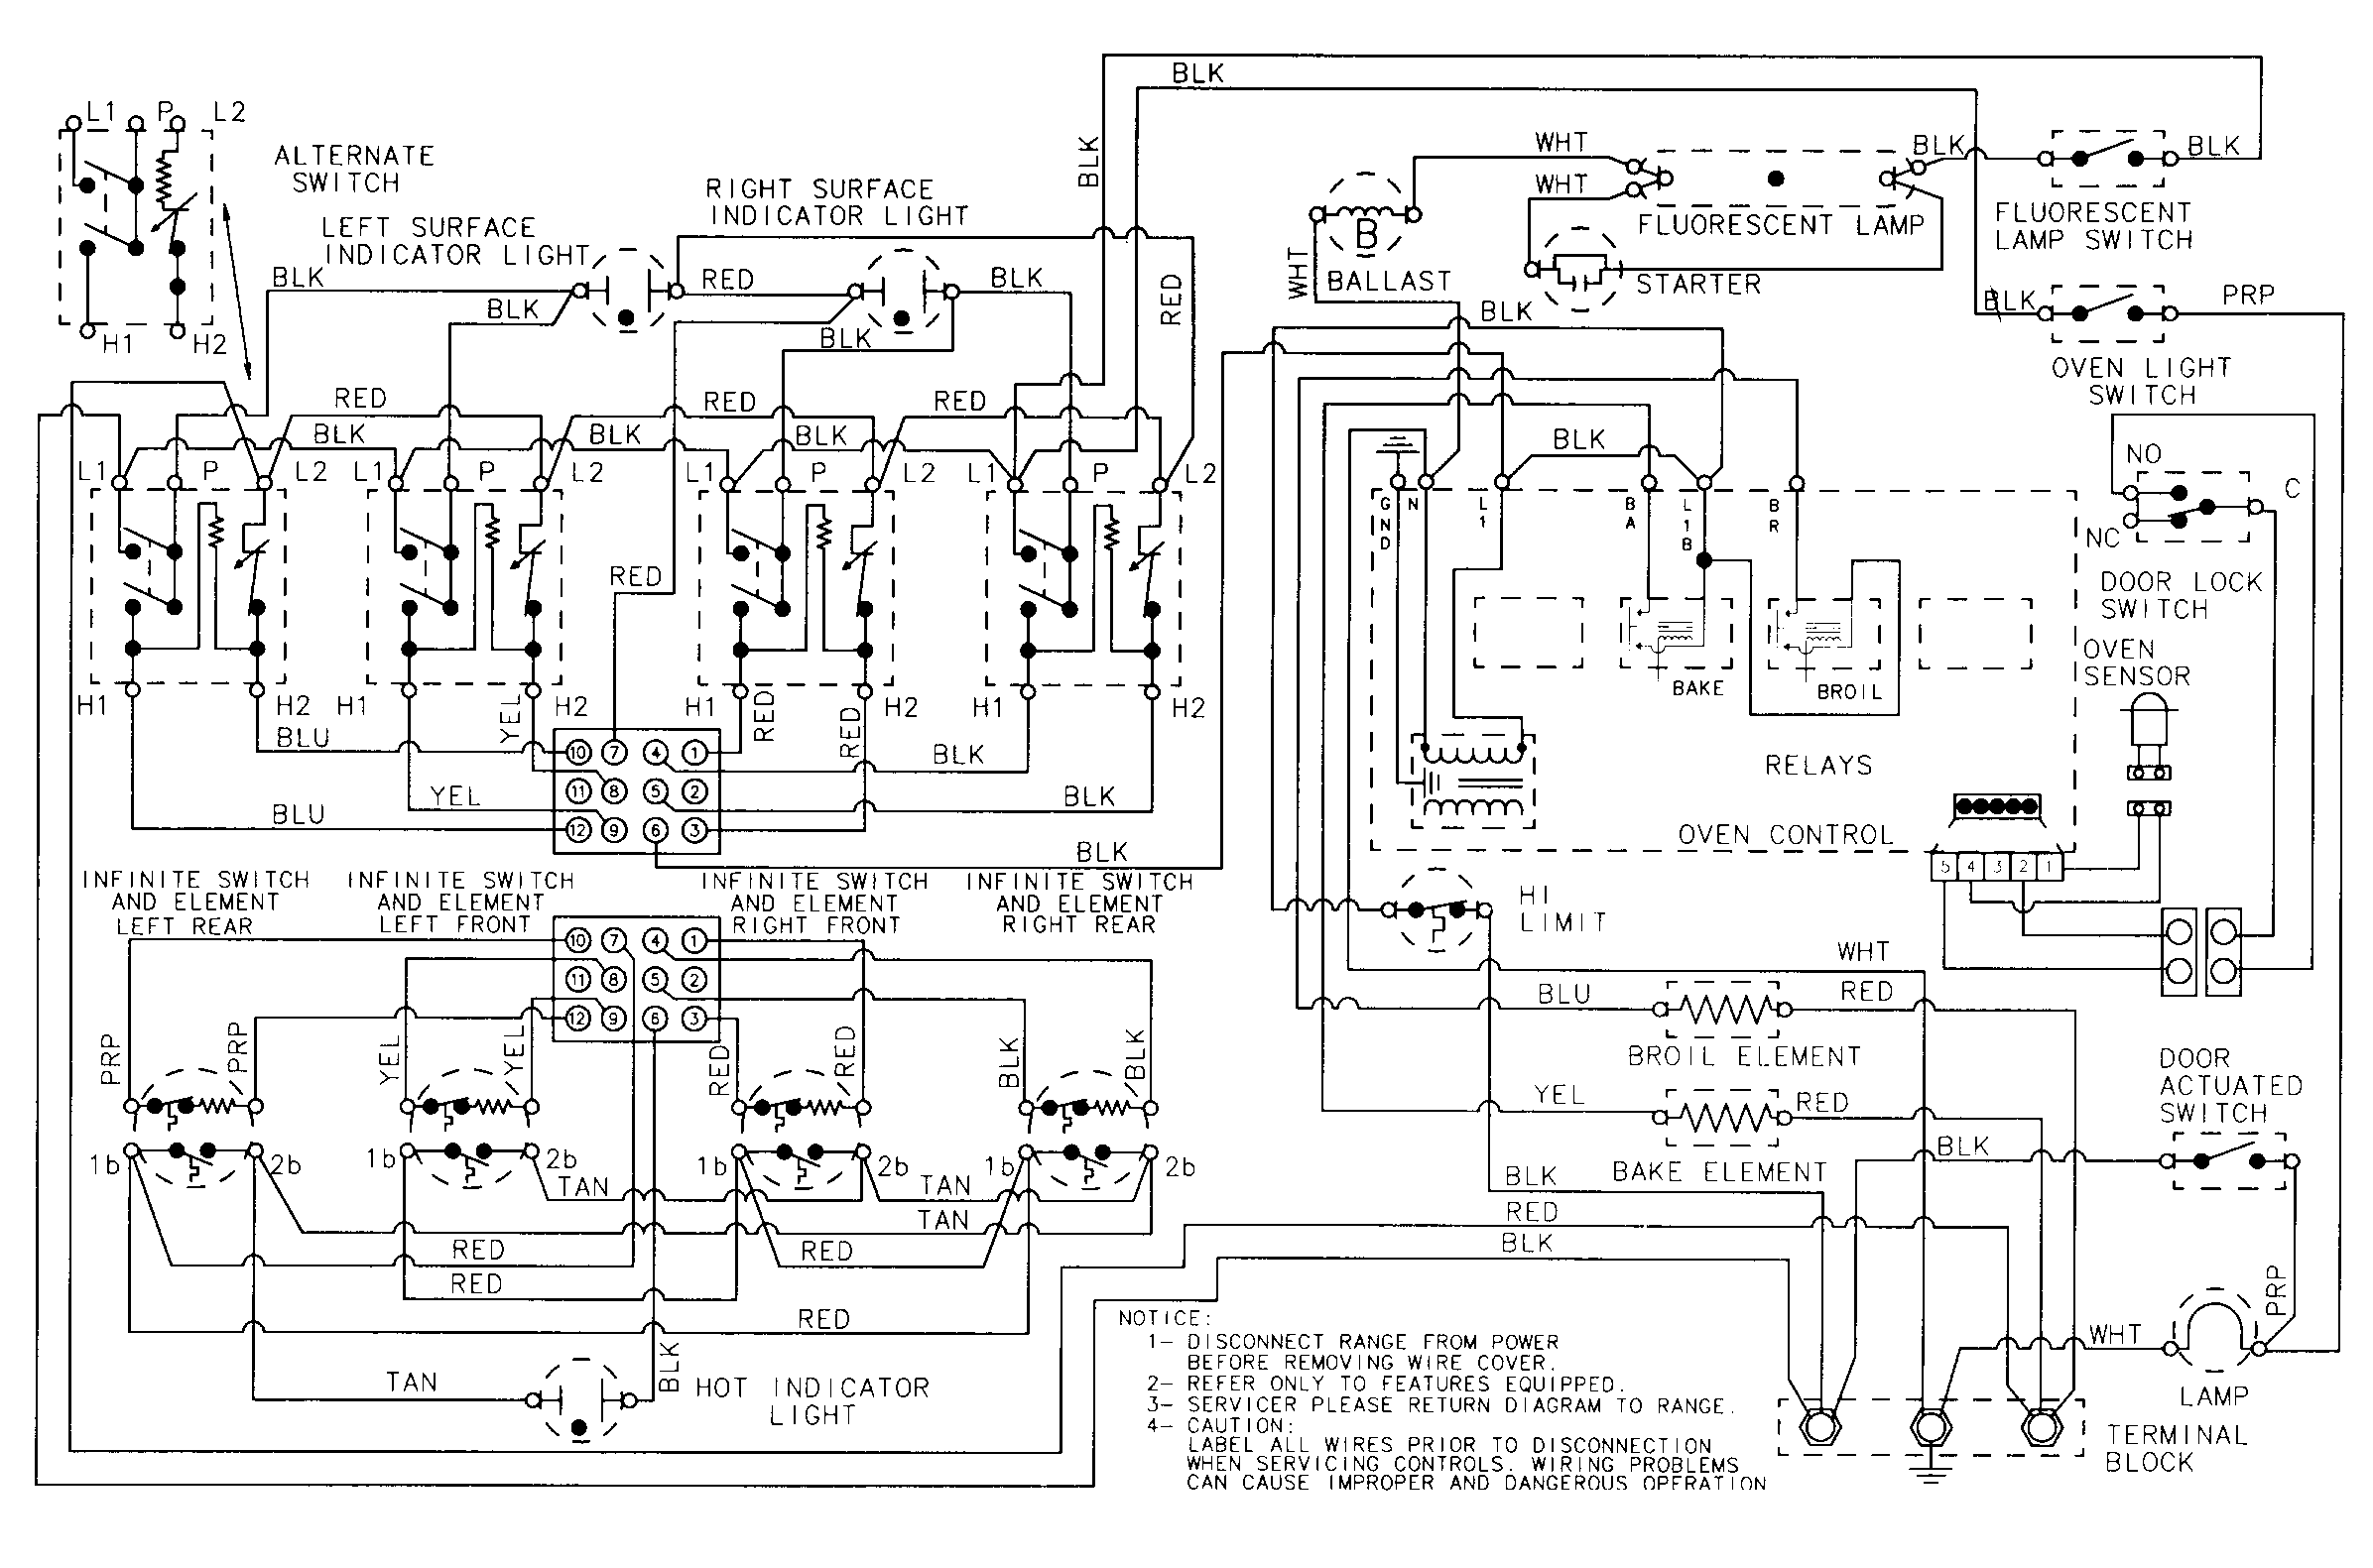 hight resolution of dishwasher motor wiring diagram wiring diagram technic unique bosch dishwasher motor wiring diagram diagram